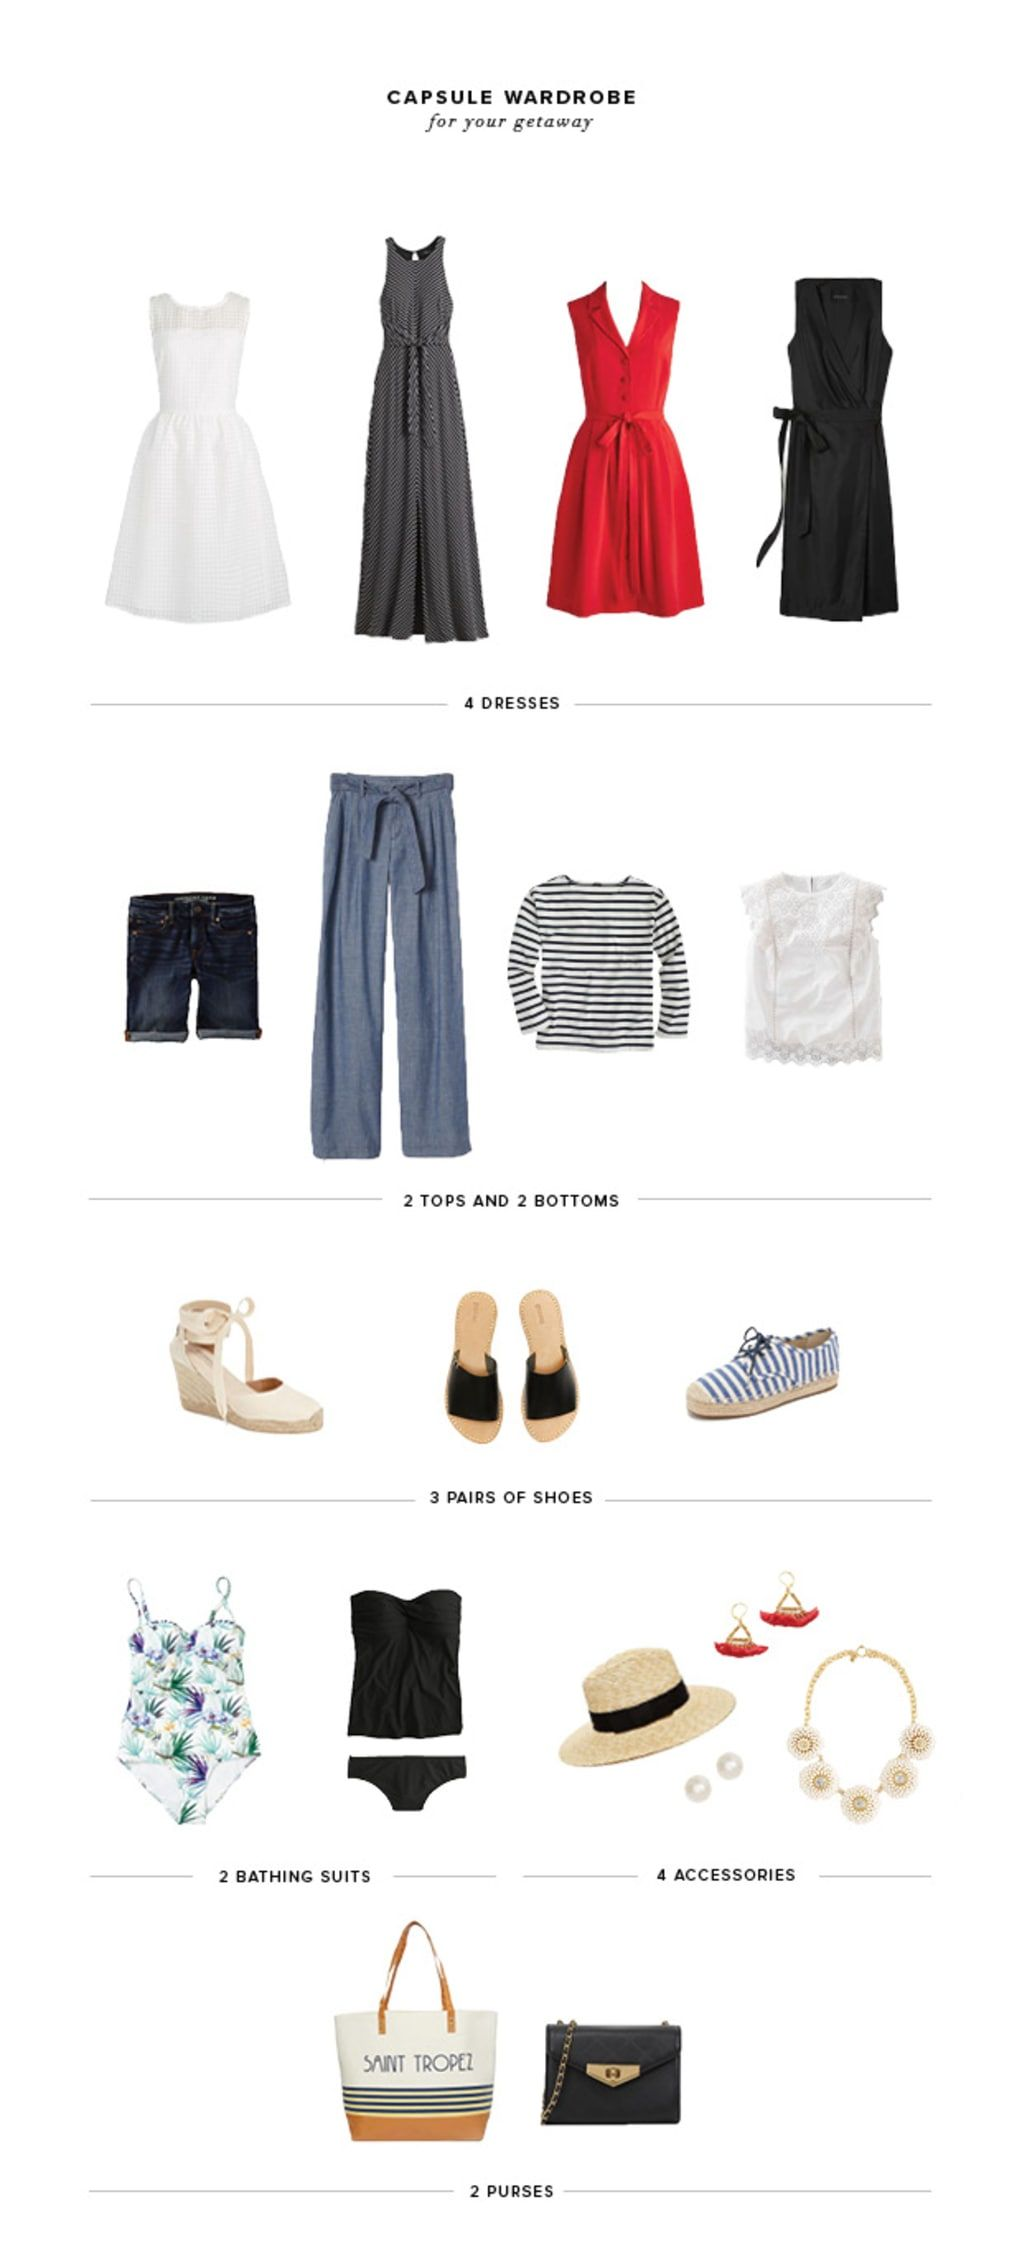 How to Create a Beach-Ready Capsule Wardrobe for Your Next Getaway | Verily